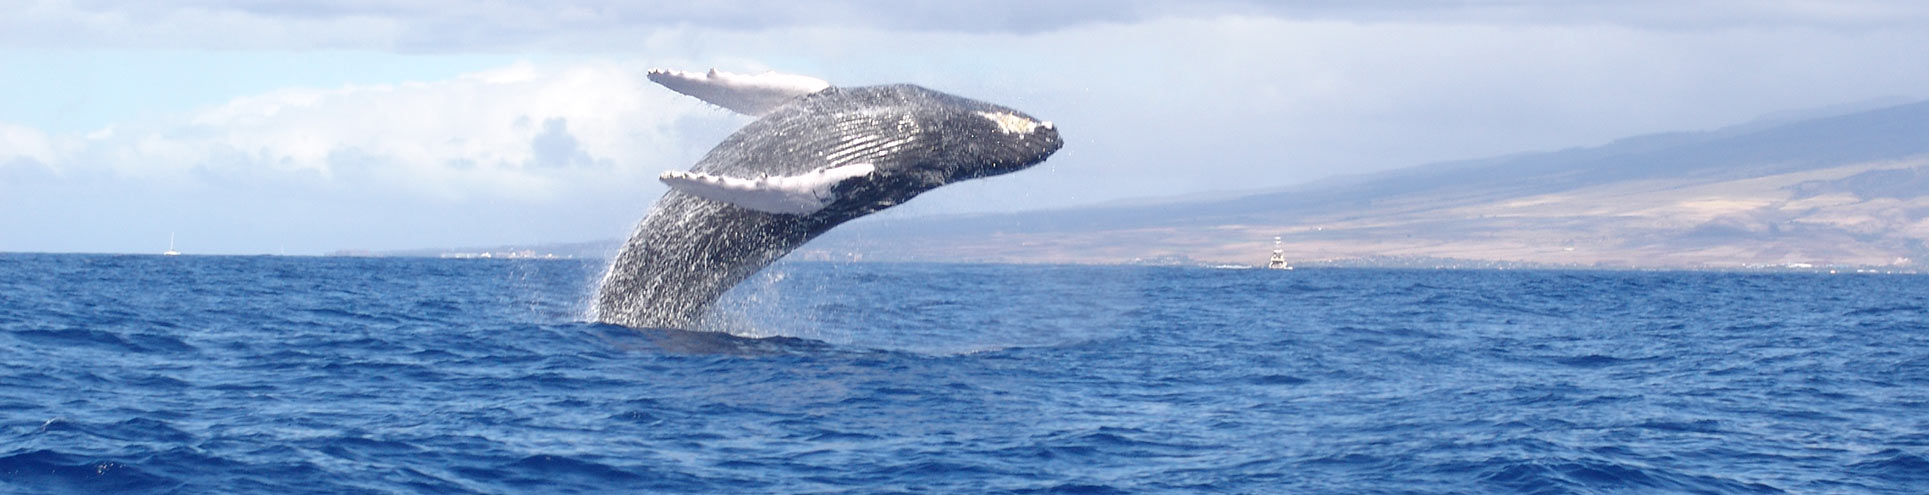 Watch the Humpbacks Breach